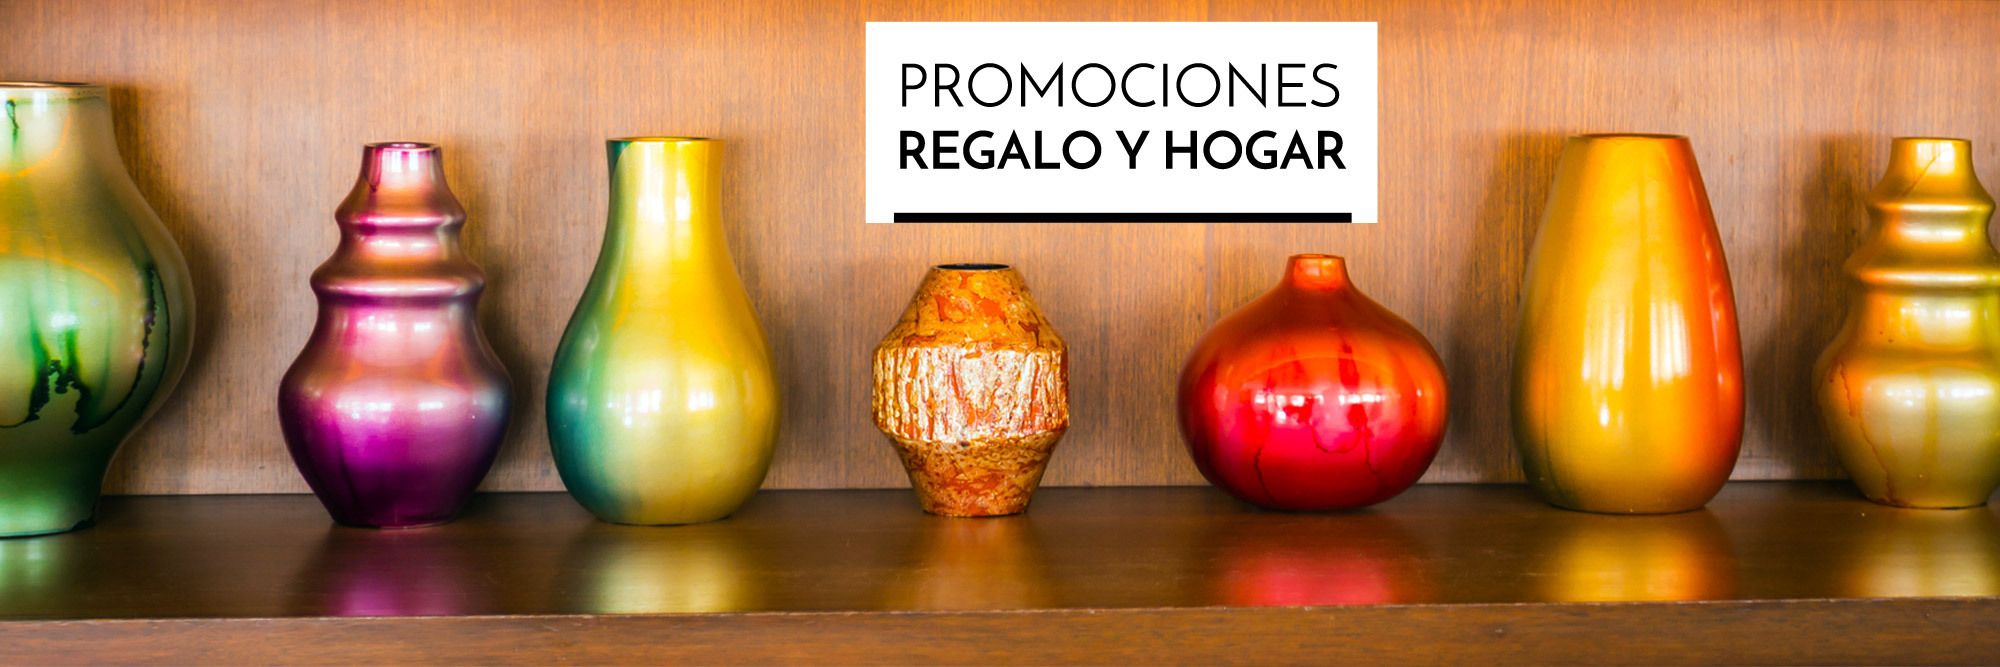 Pondiregal iluminaci n regalos y decoraci n tel 962684363 for Regalos decoracion hogar